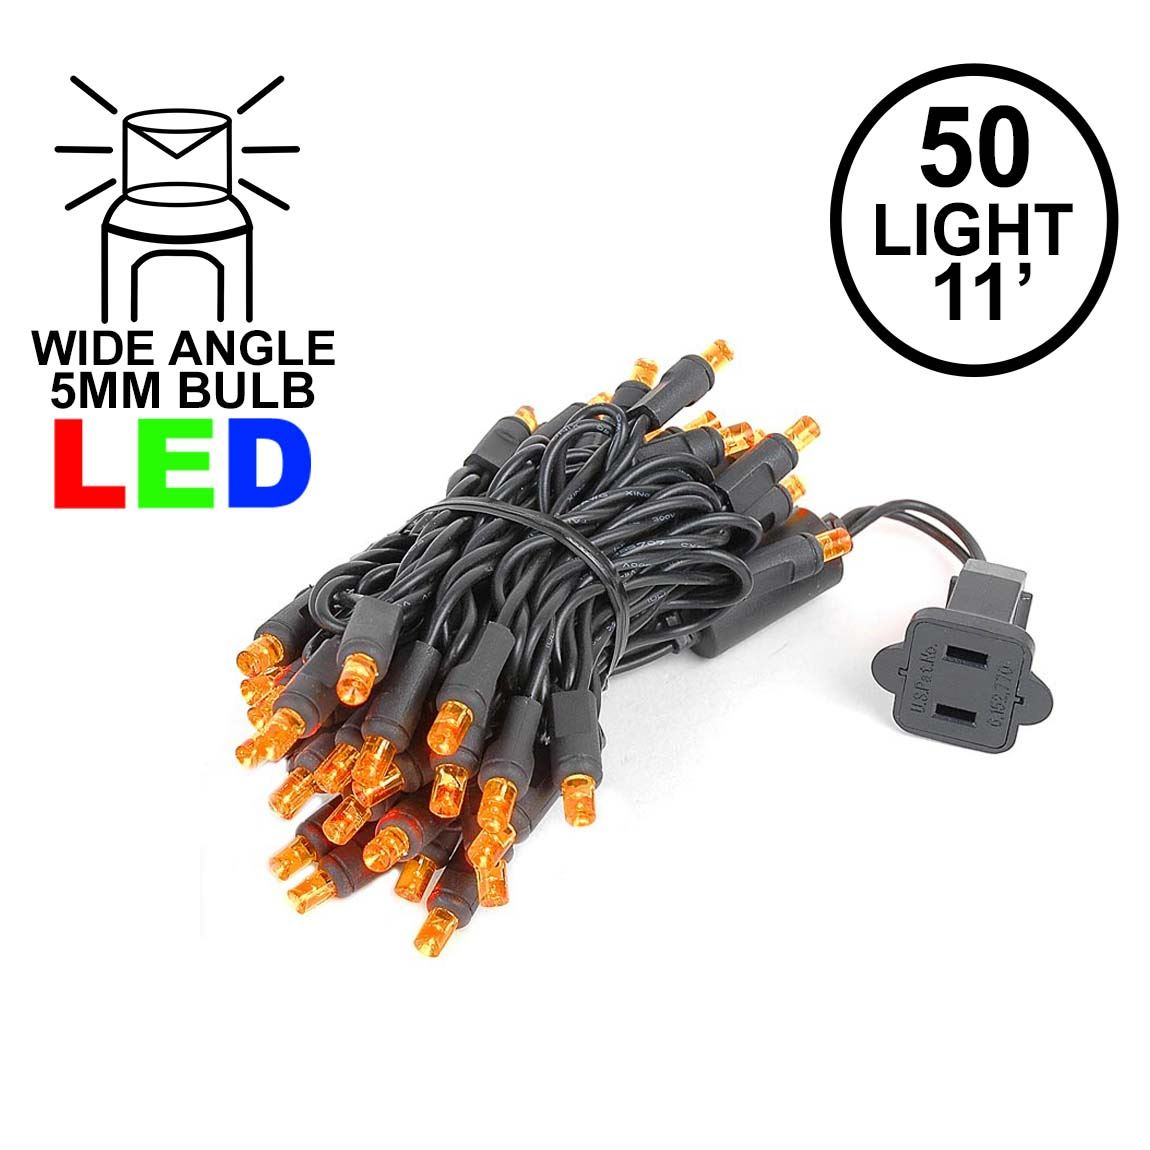 Picture of 50 LED Amber LED Christmas Lights 11' Long on Black Wire